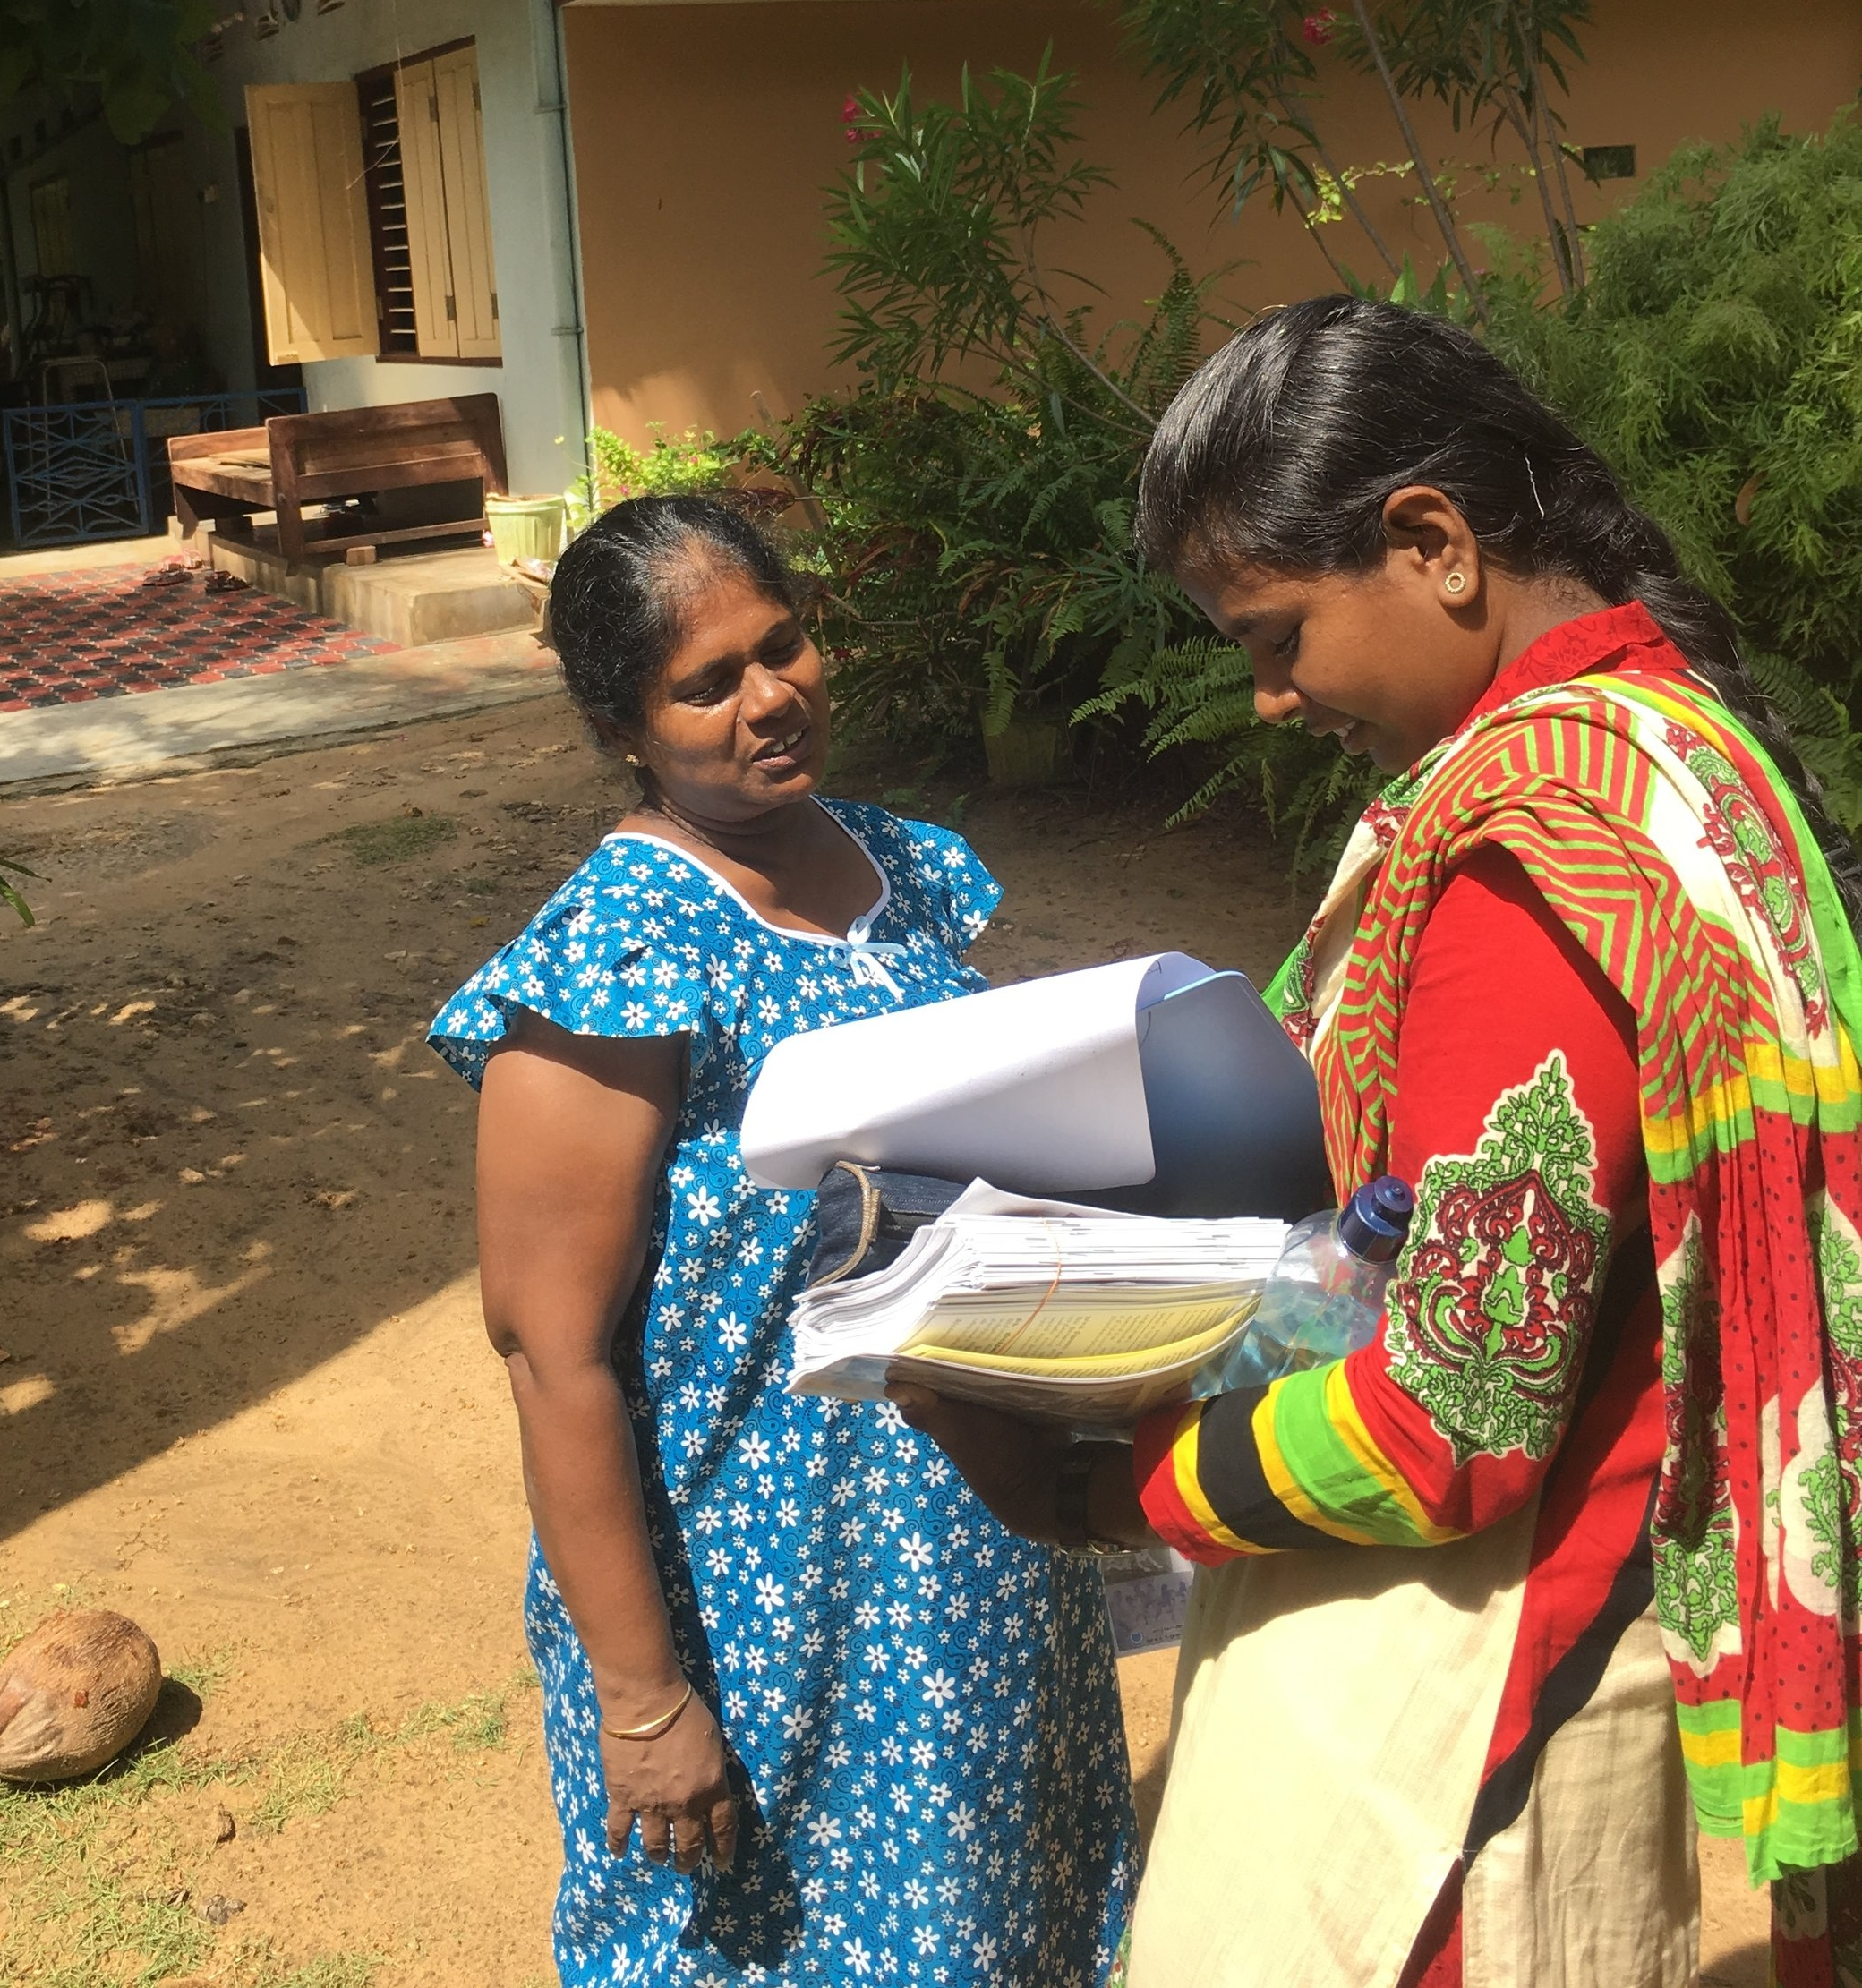 Intern Luxsana Balakumaran (right) distributing project information and participating in a door-to-door materials search campaign near St. James church. Photo Credit: Mark E. Balmforth